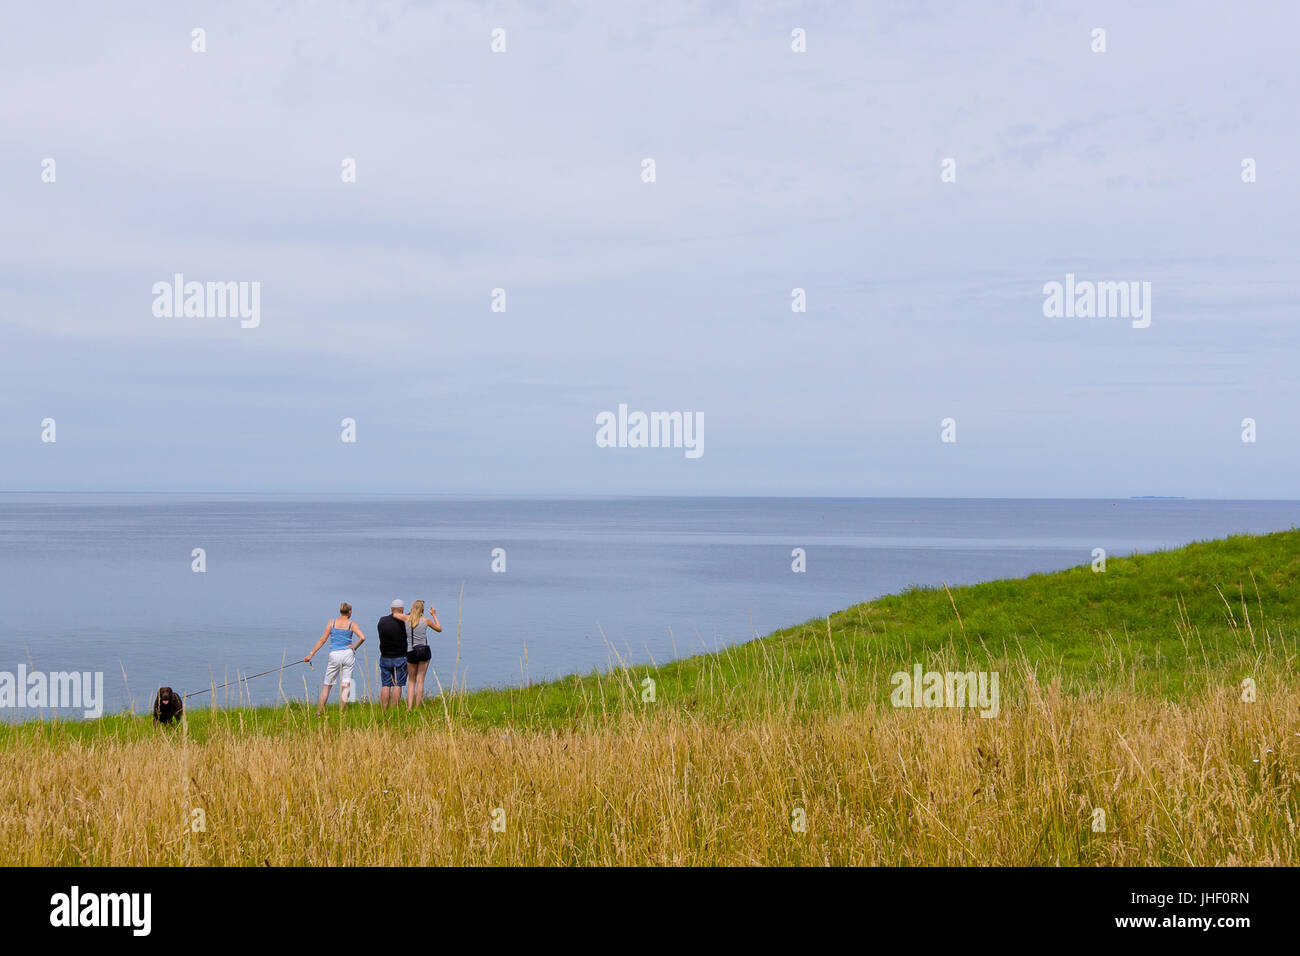 Family standing in the grass high above  the sea, Hundested, Denmark, July 10, 2017 - Stock Image